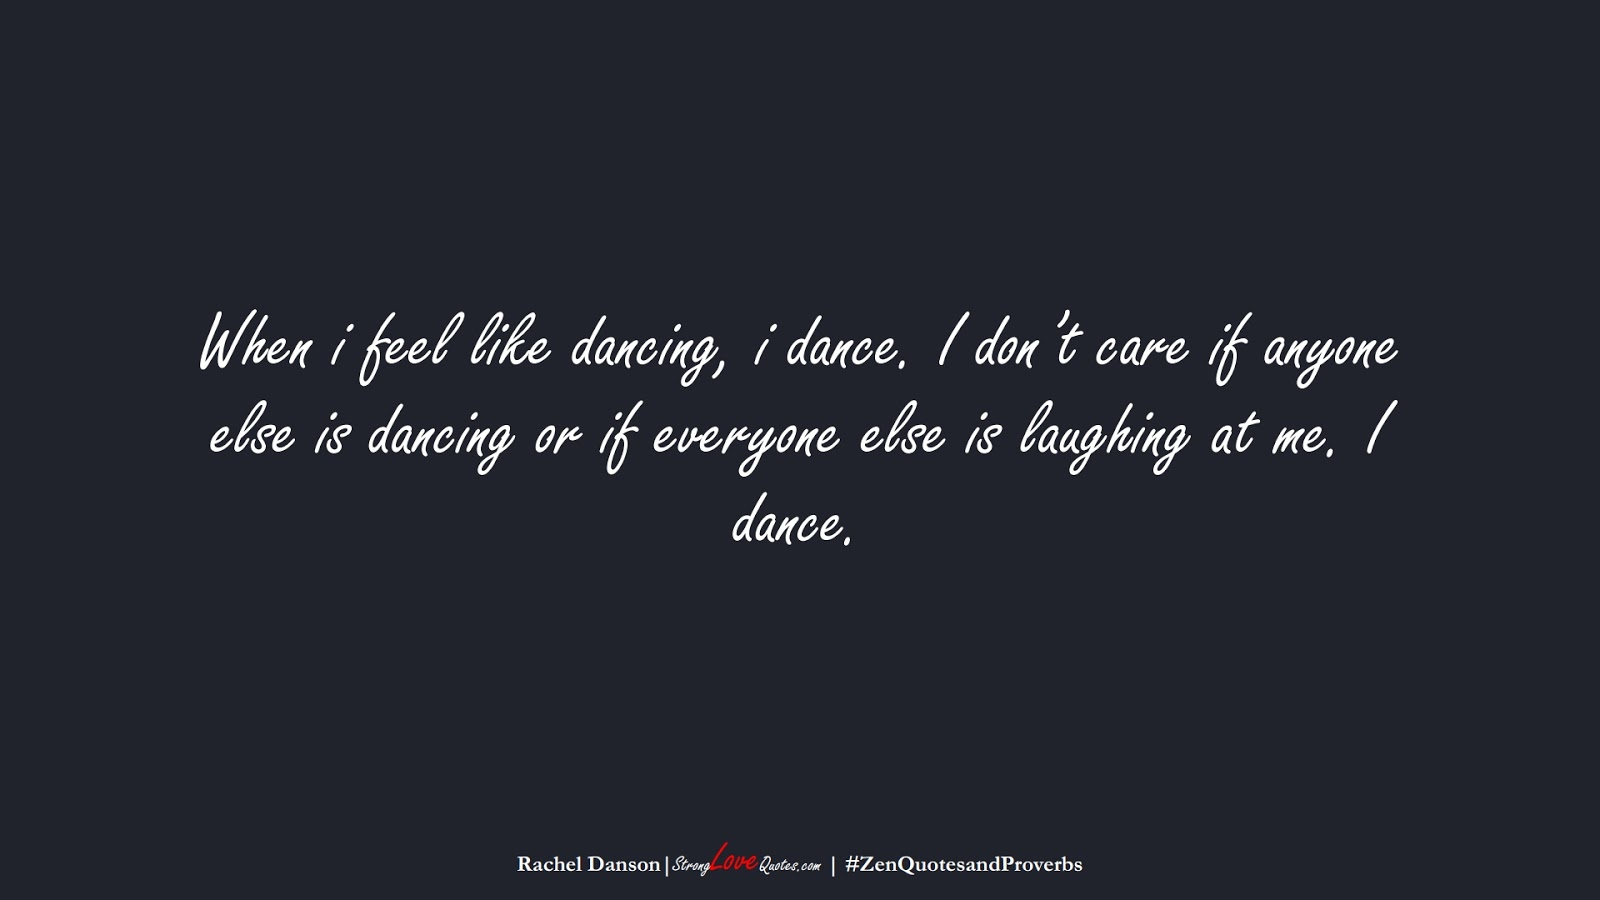 When i feel like dancing, i dance. I don't care if anyone else is dancing or if everyone else is laughing at me. I dance. (Rachel Danson);  #ZenQuotesandProverbs